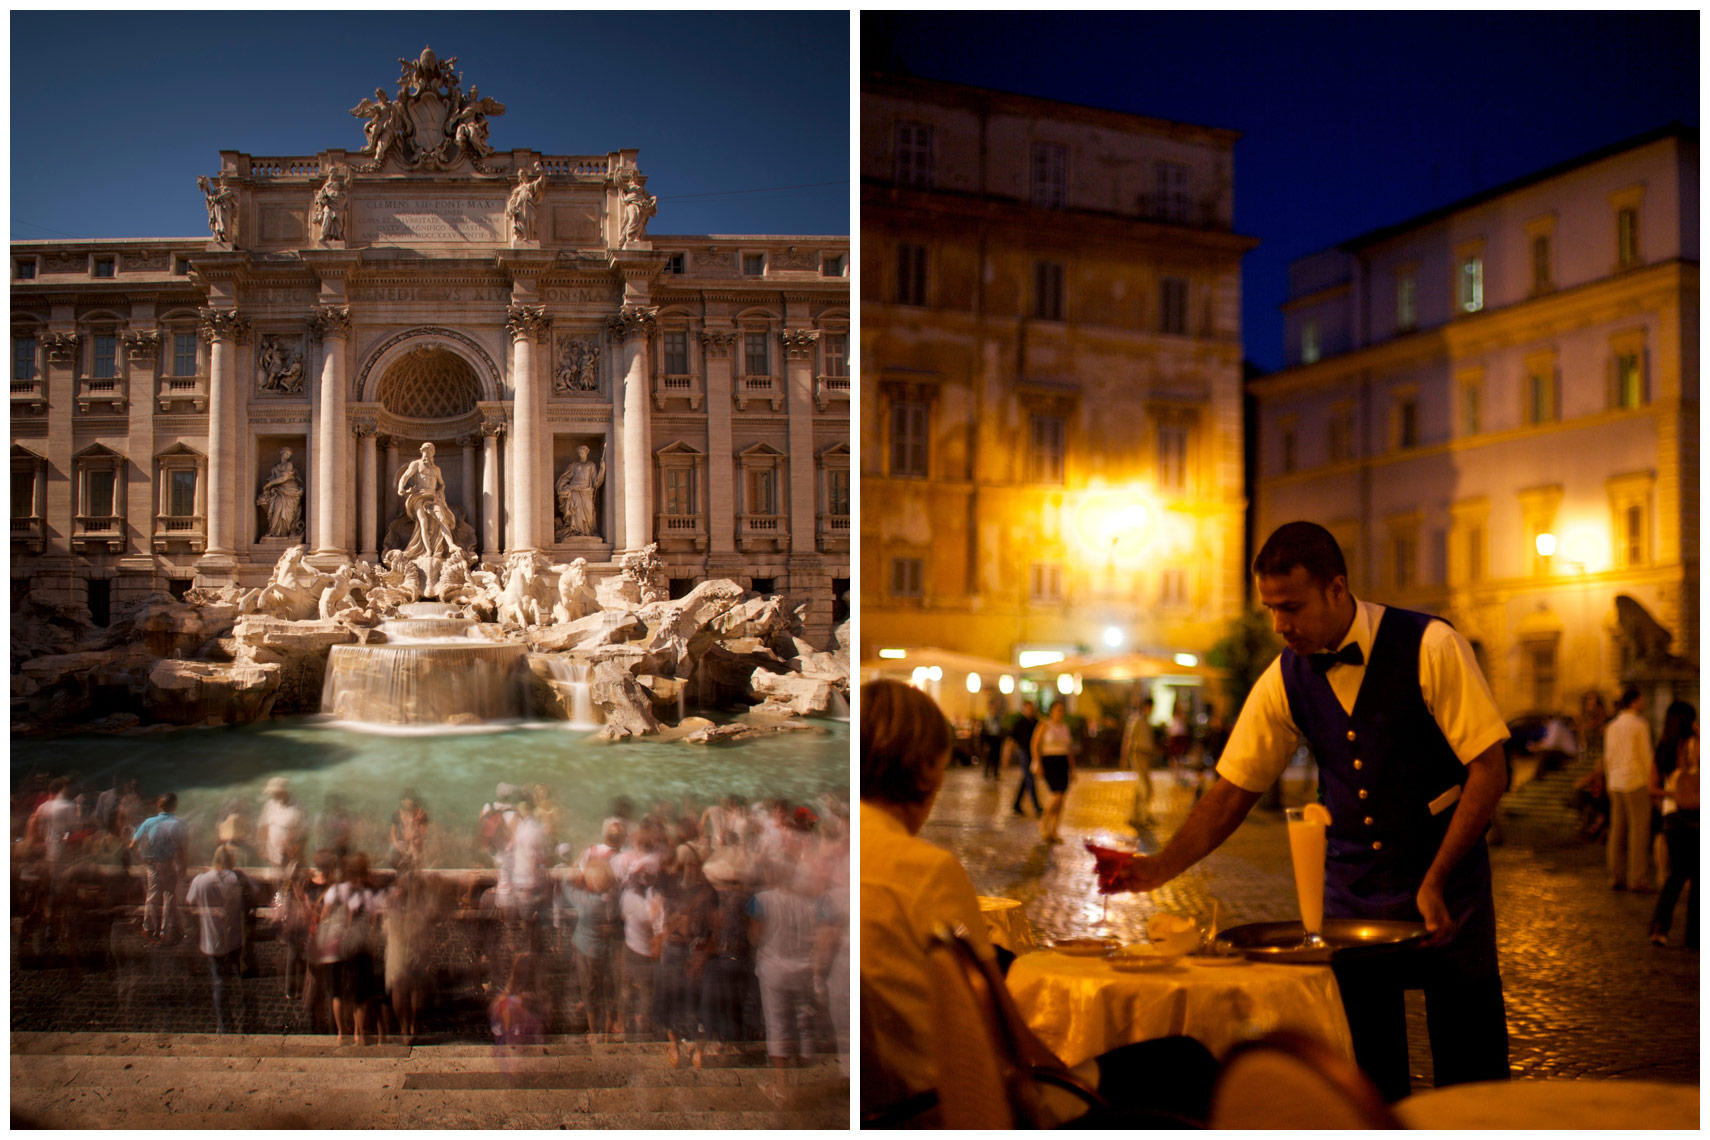 Trevi Fountain in Rome and a waiter at a cafe in the Piazza Santa Maria across the Tibor in Trastevere